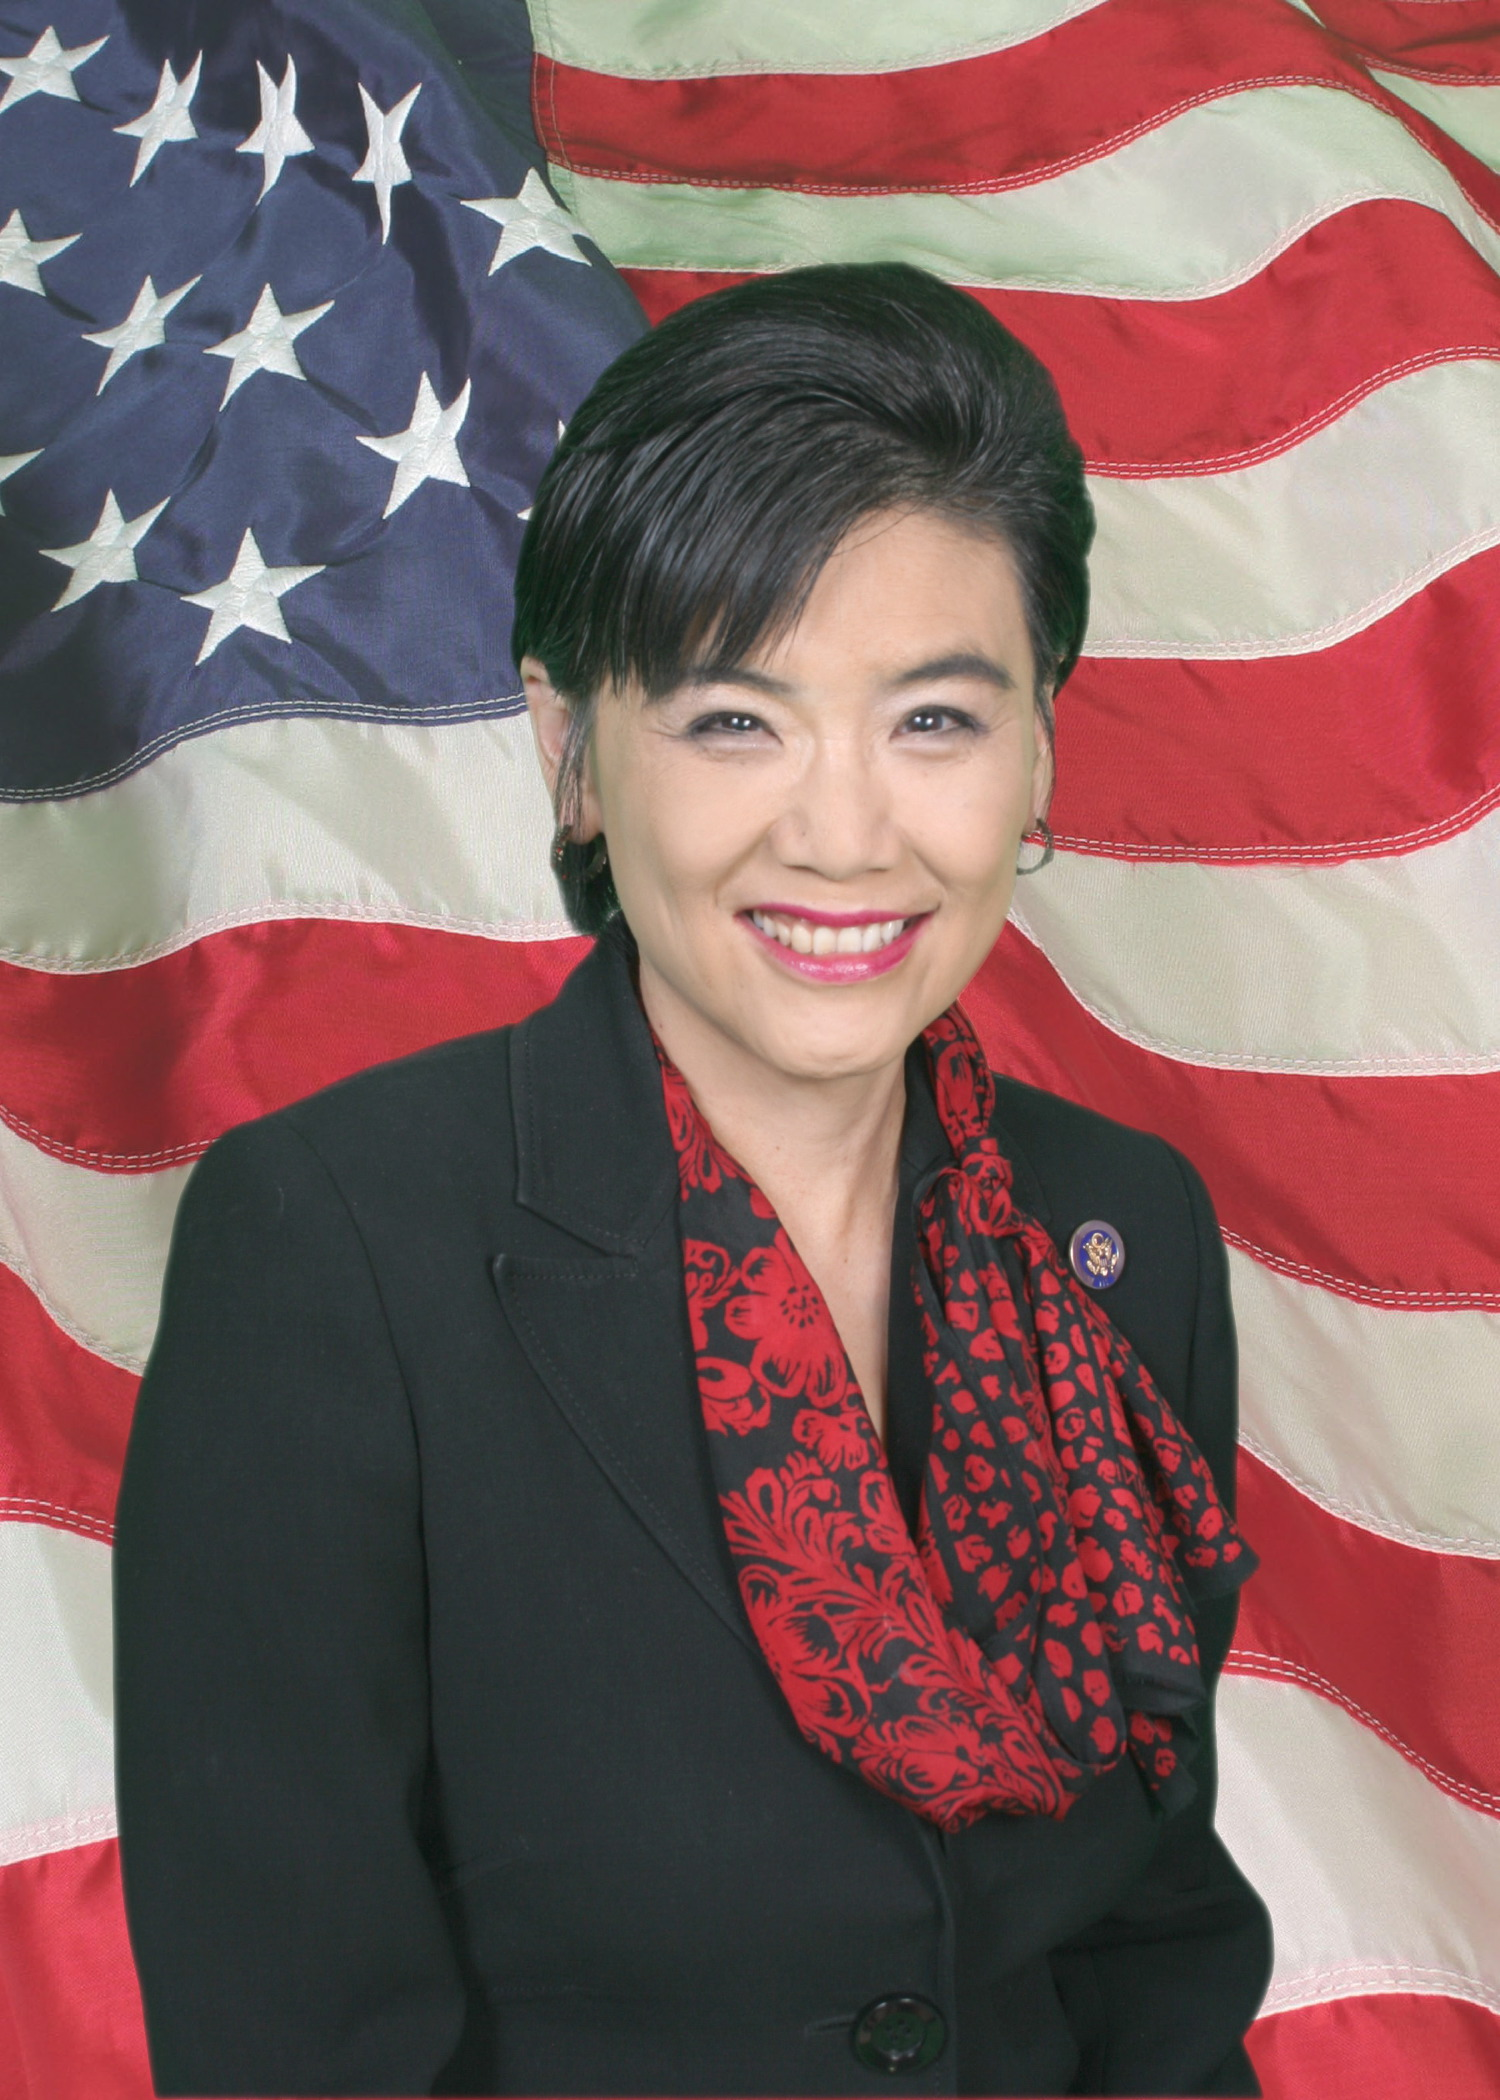 Rep. Judy Chu Publicly Supports Impeachment Inquiry into President Trump